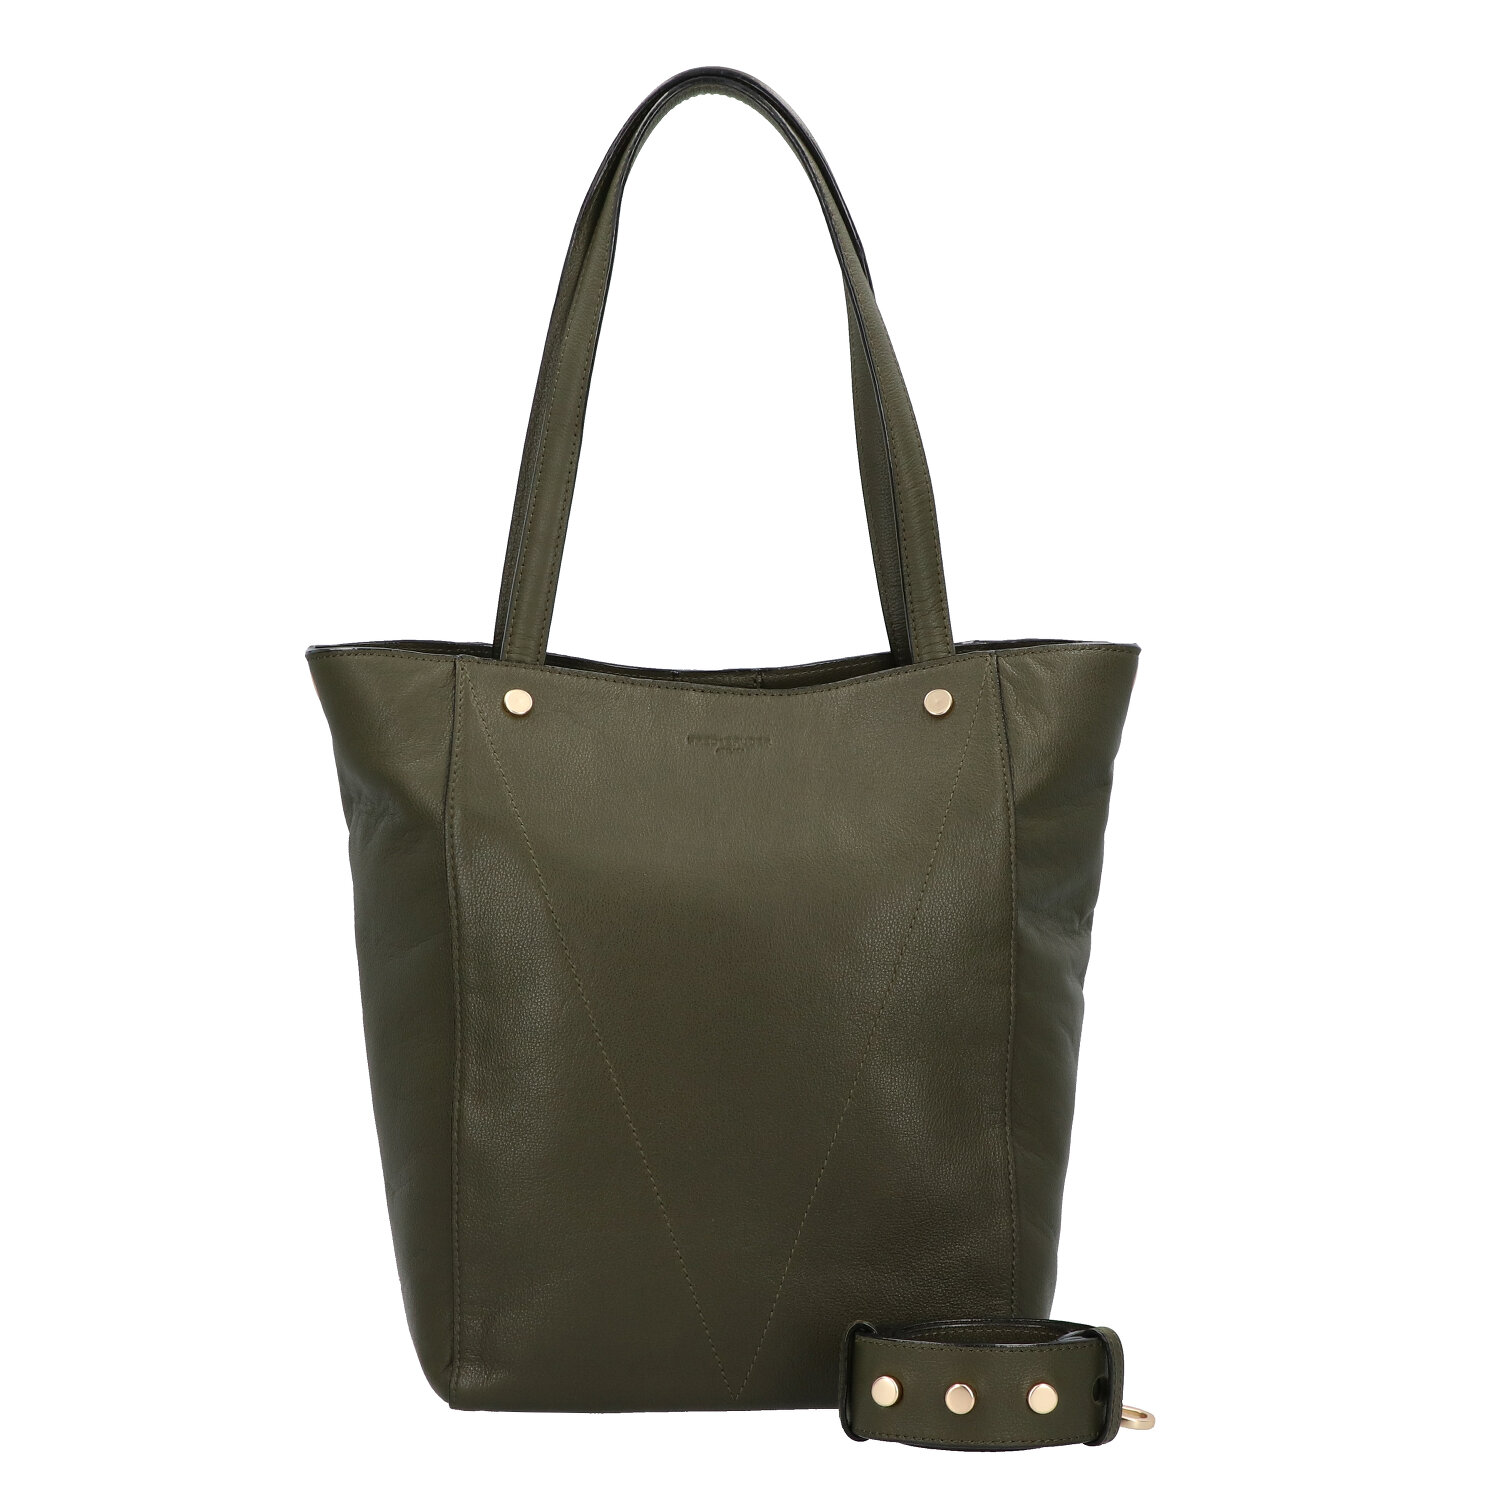 Fat Leder Atelier Shopper 24 Cm City Tasche CrxedWBo